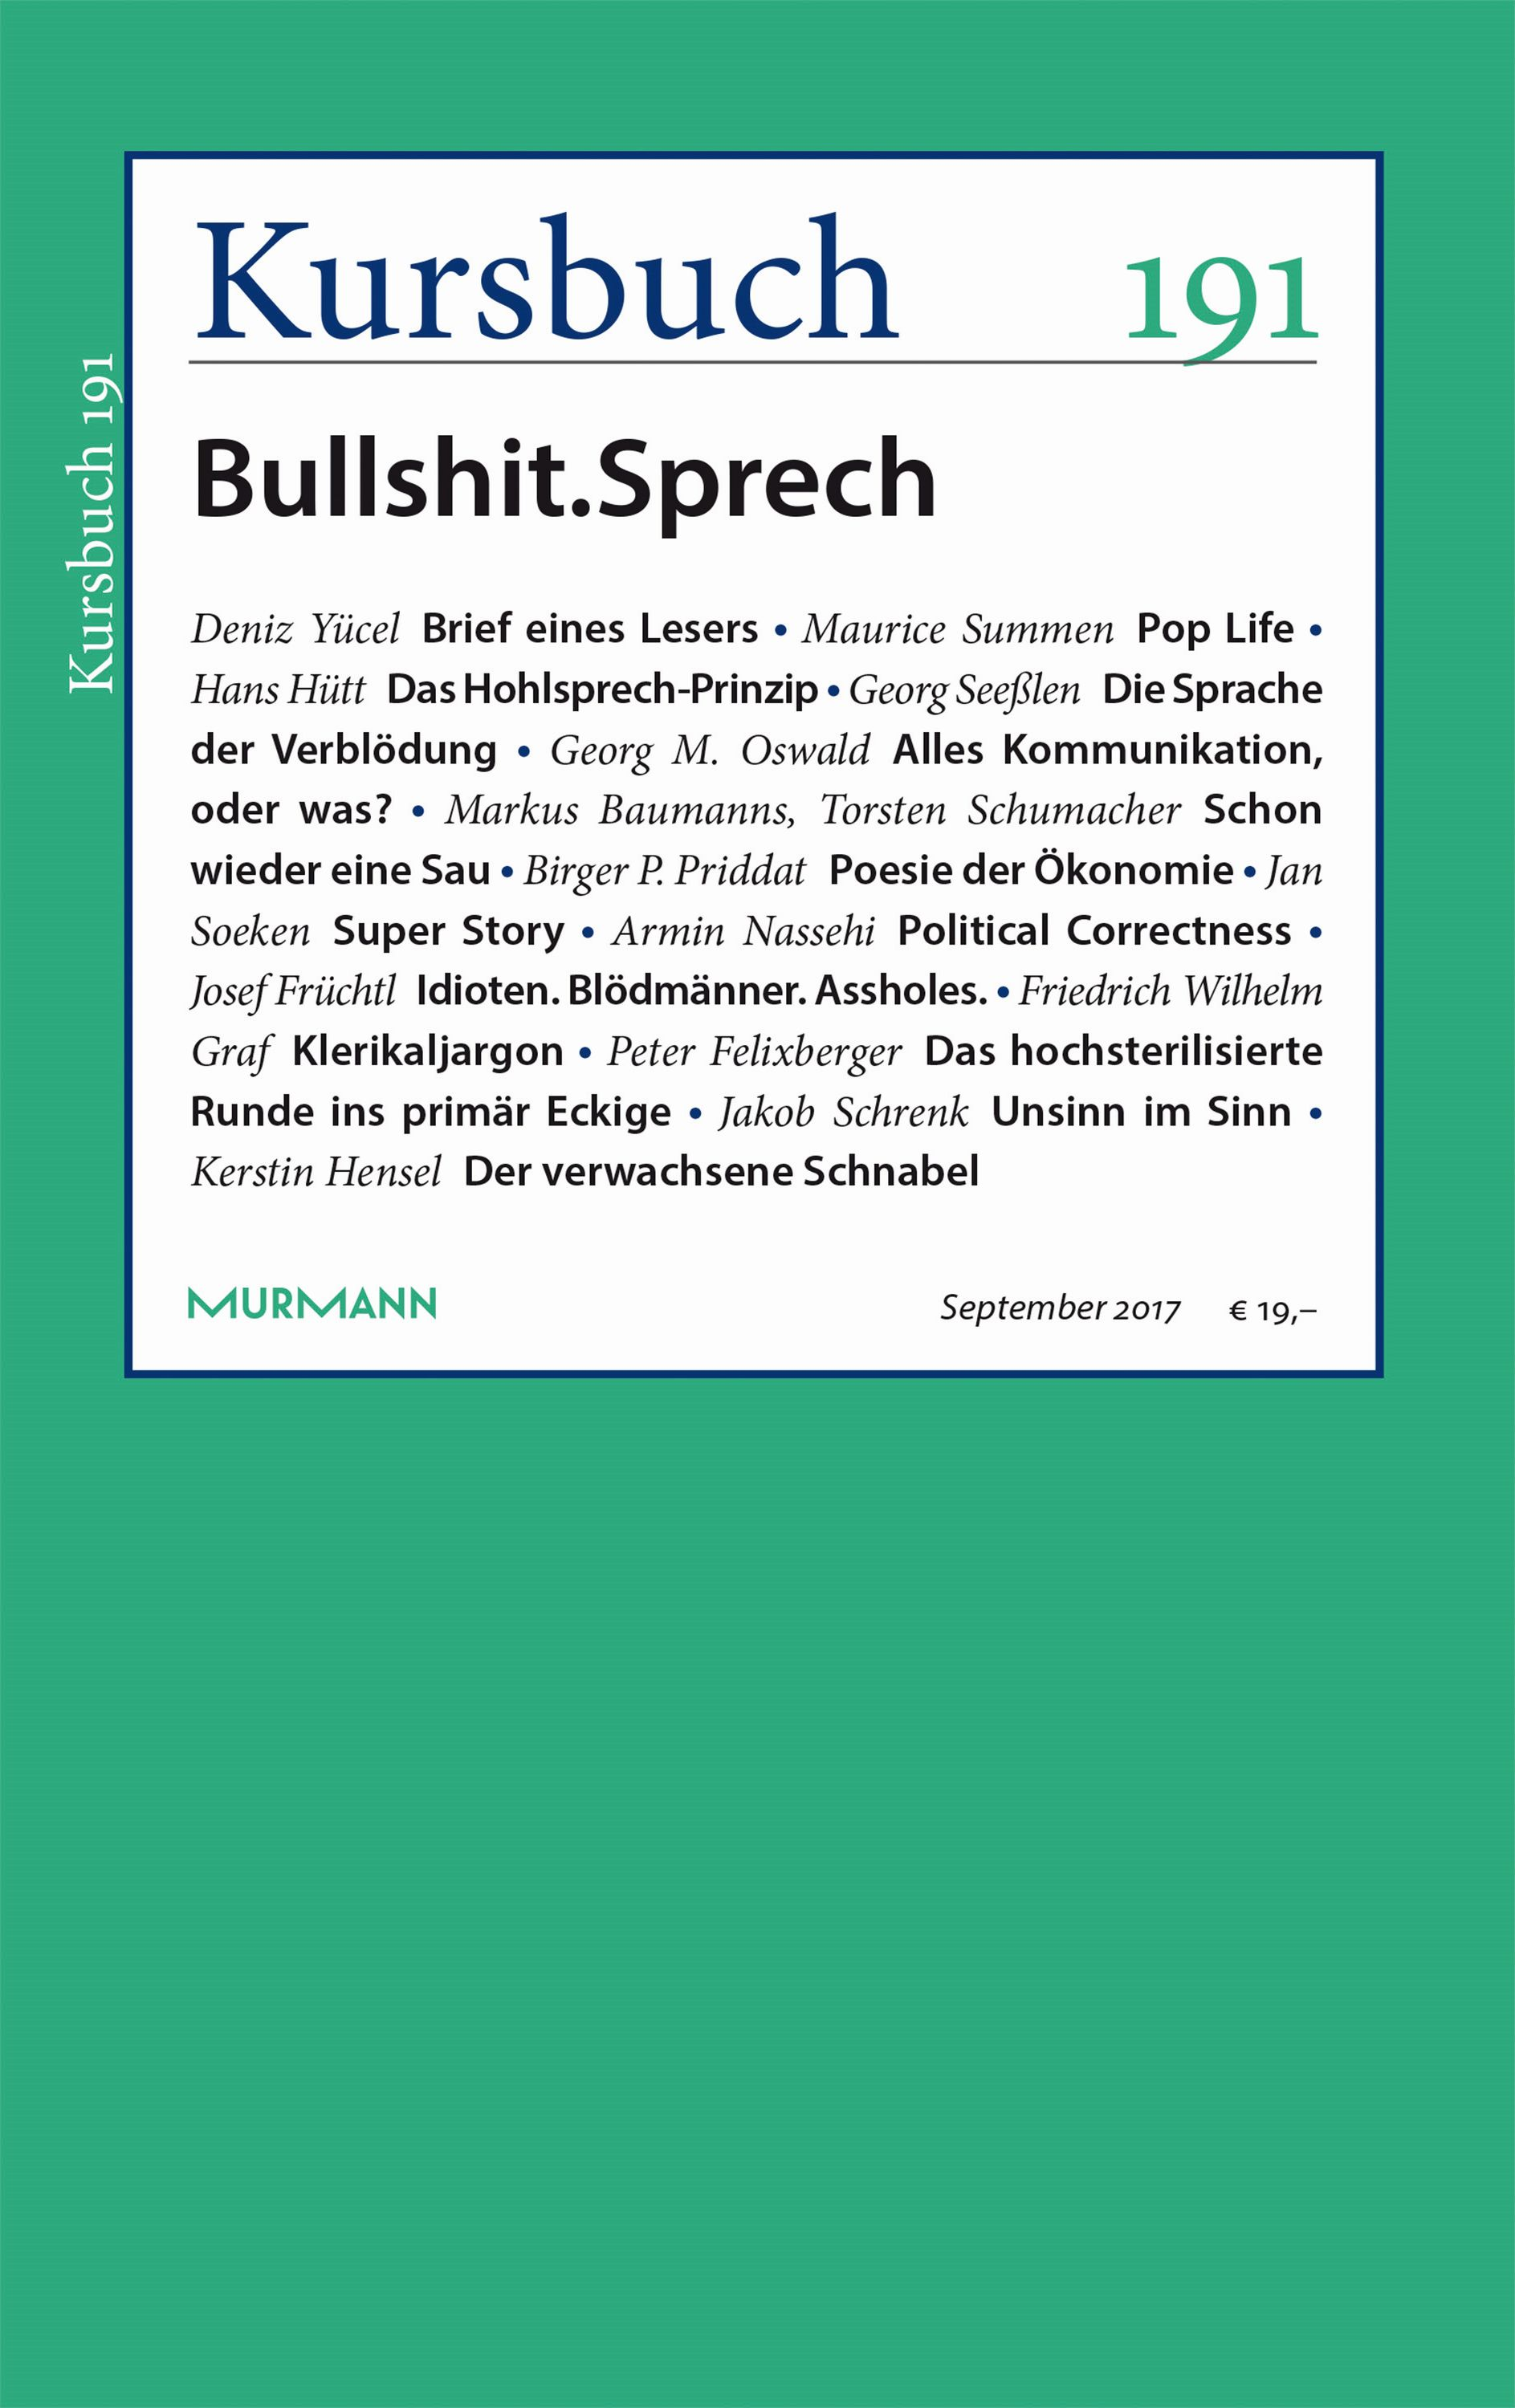 Kursbuch 191 – Editorial